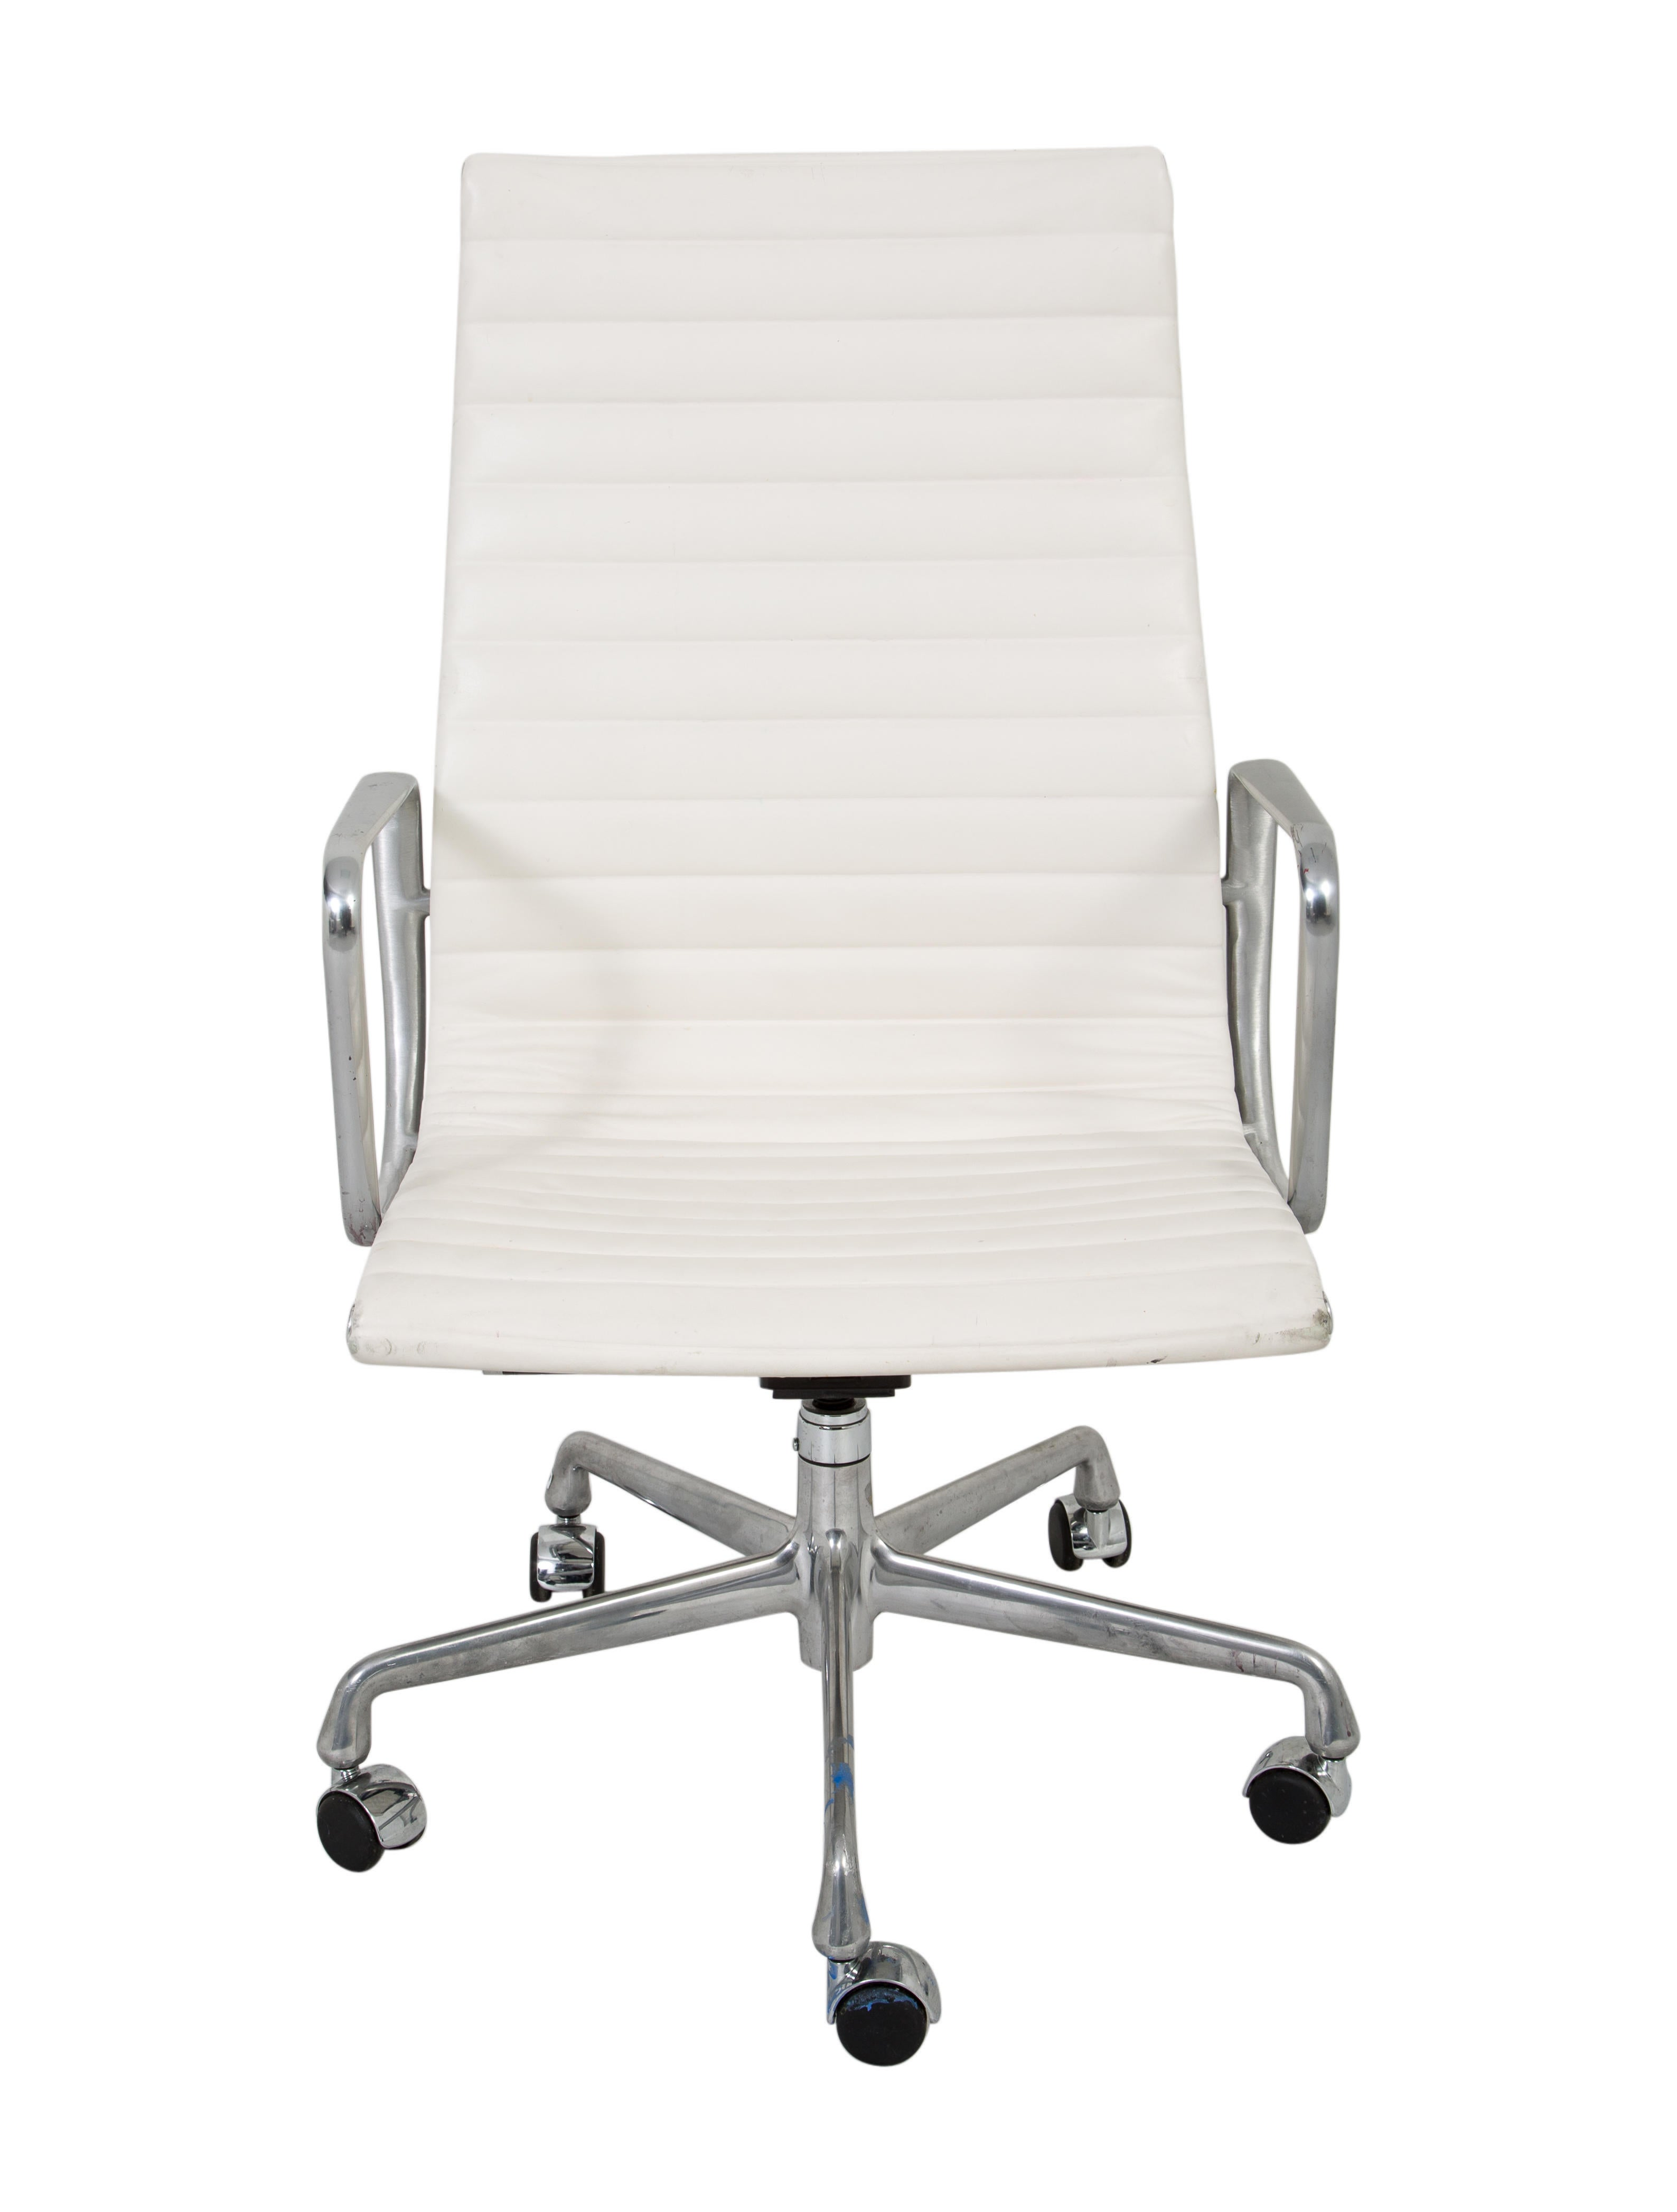 Herman Miller Eames Management Chair Furniture HRMIL